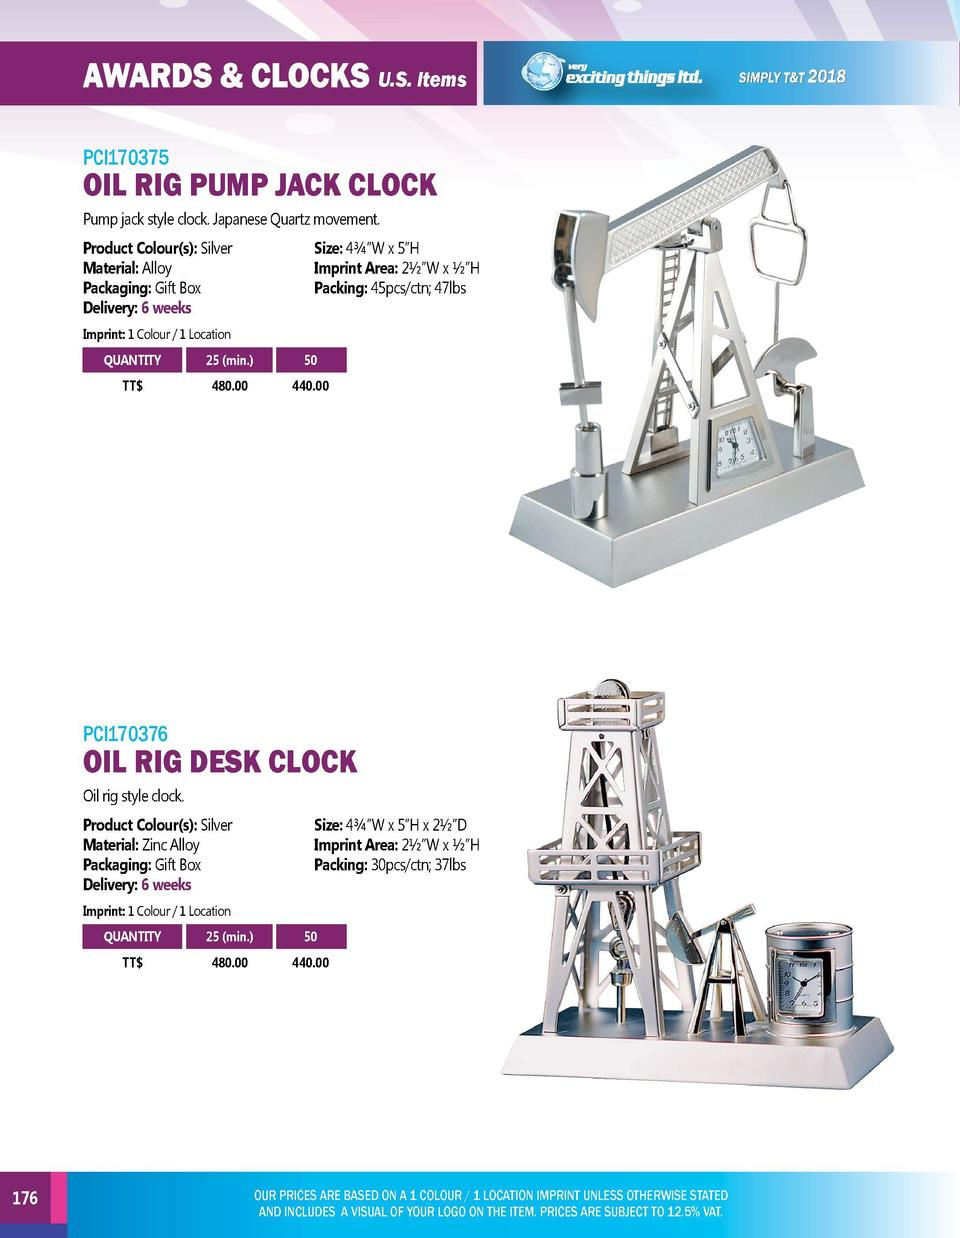 AWARDS   CLOCKS U.S. Items  EXECUTIVE GIFTS U.S. Items  PCI170375  PCI170377  Pump jack style clock. Japanese Quartz movem...